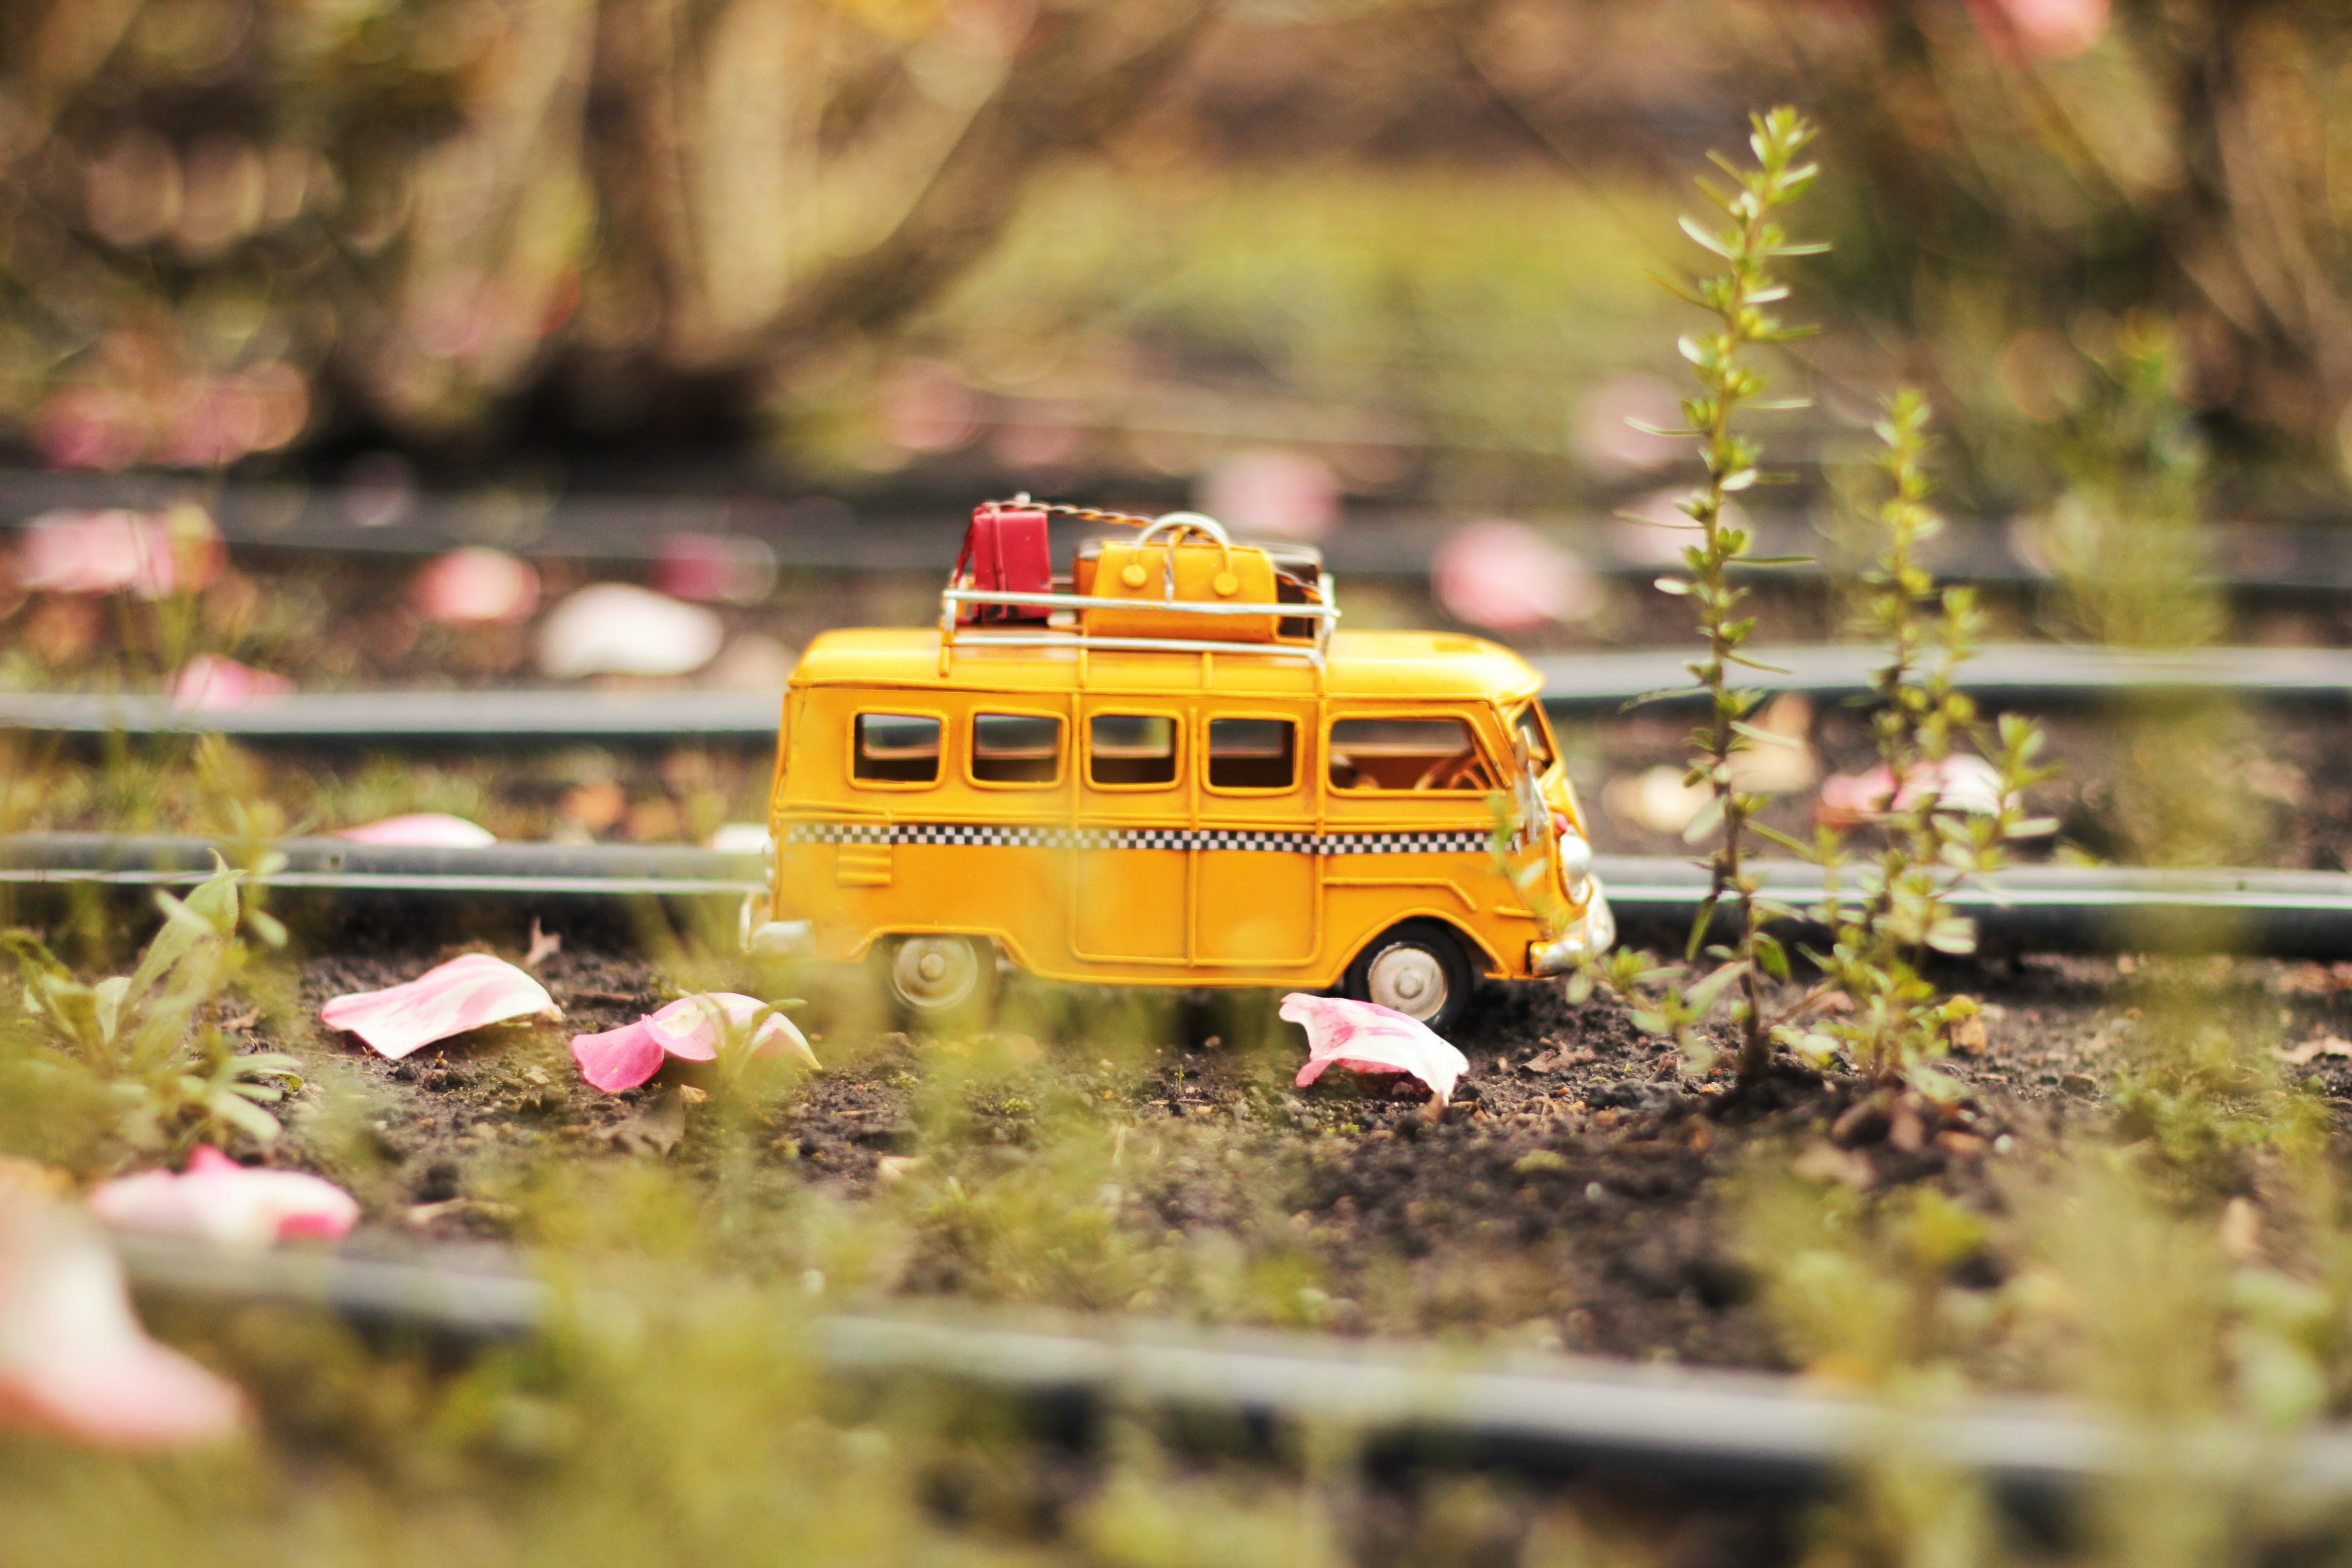 Tilt Shift and Selective Color Photo of White Van Miniature